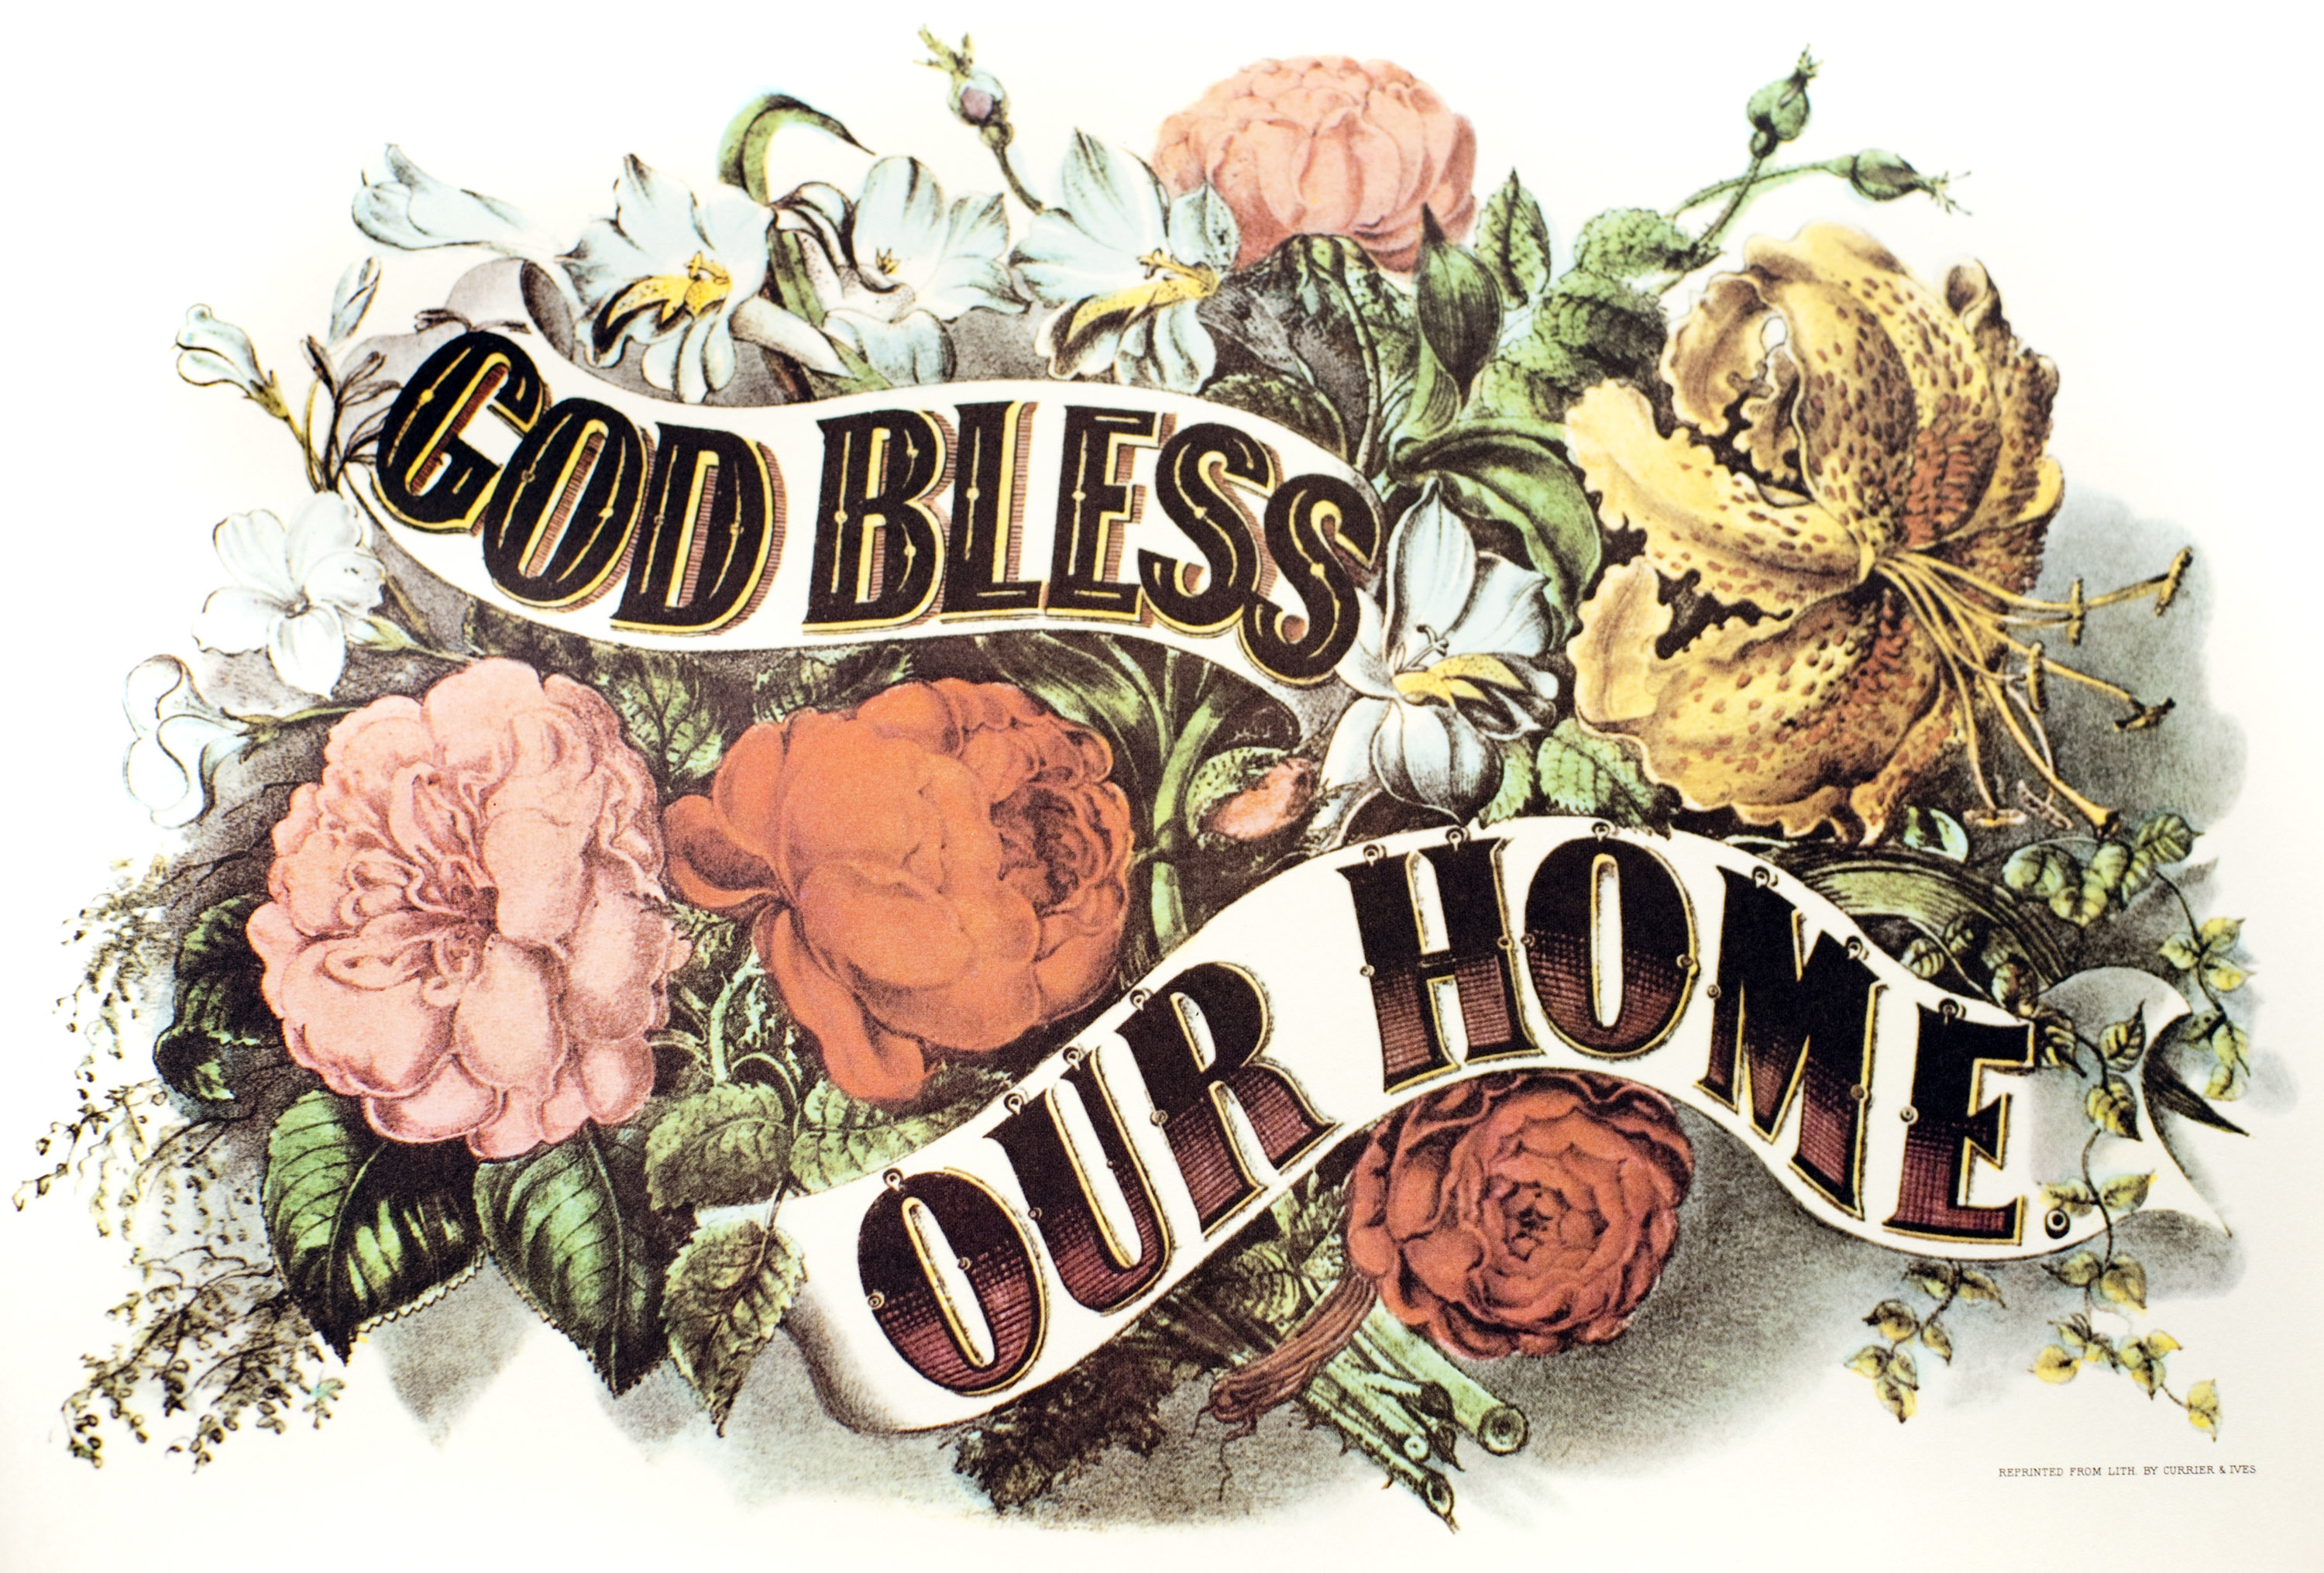 Top god bless our home-3274 | Stockarch Free Stock Photos TD35